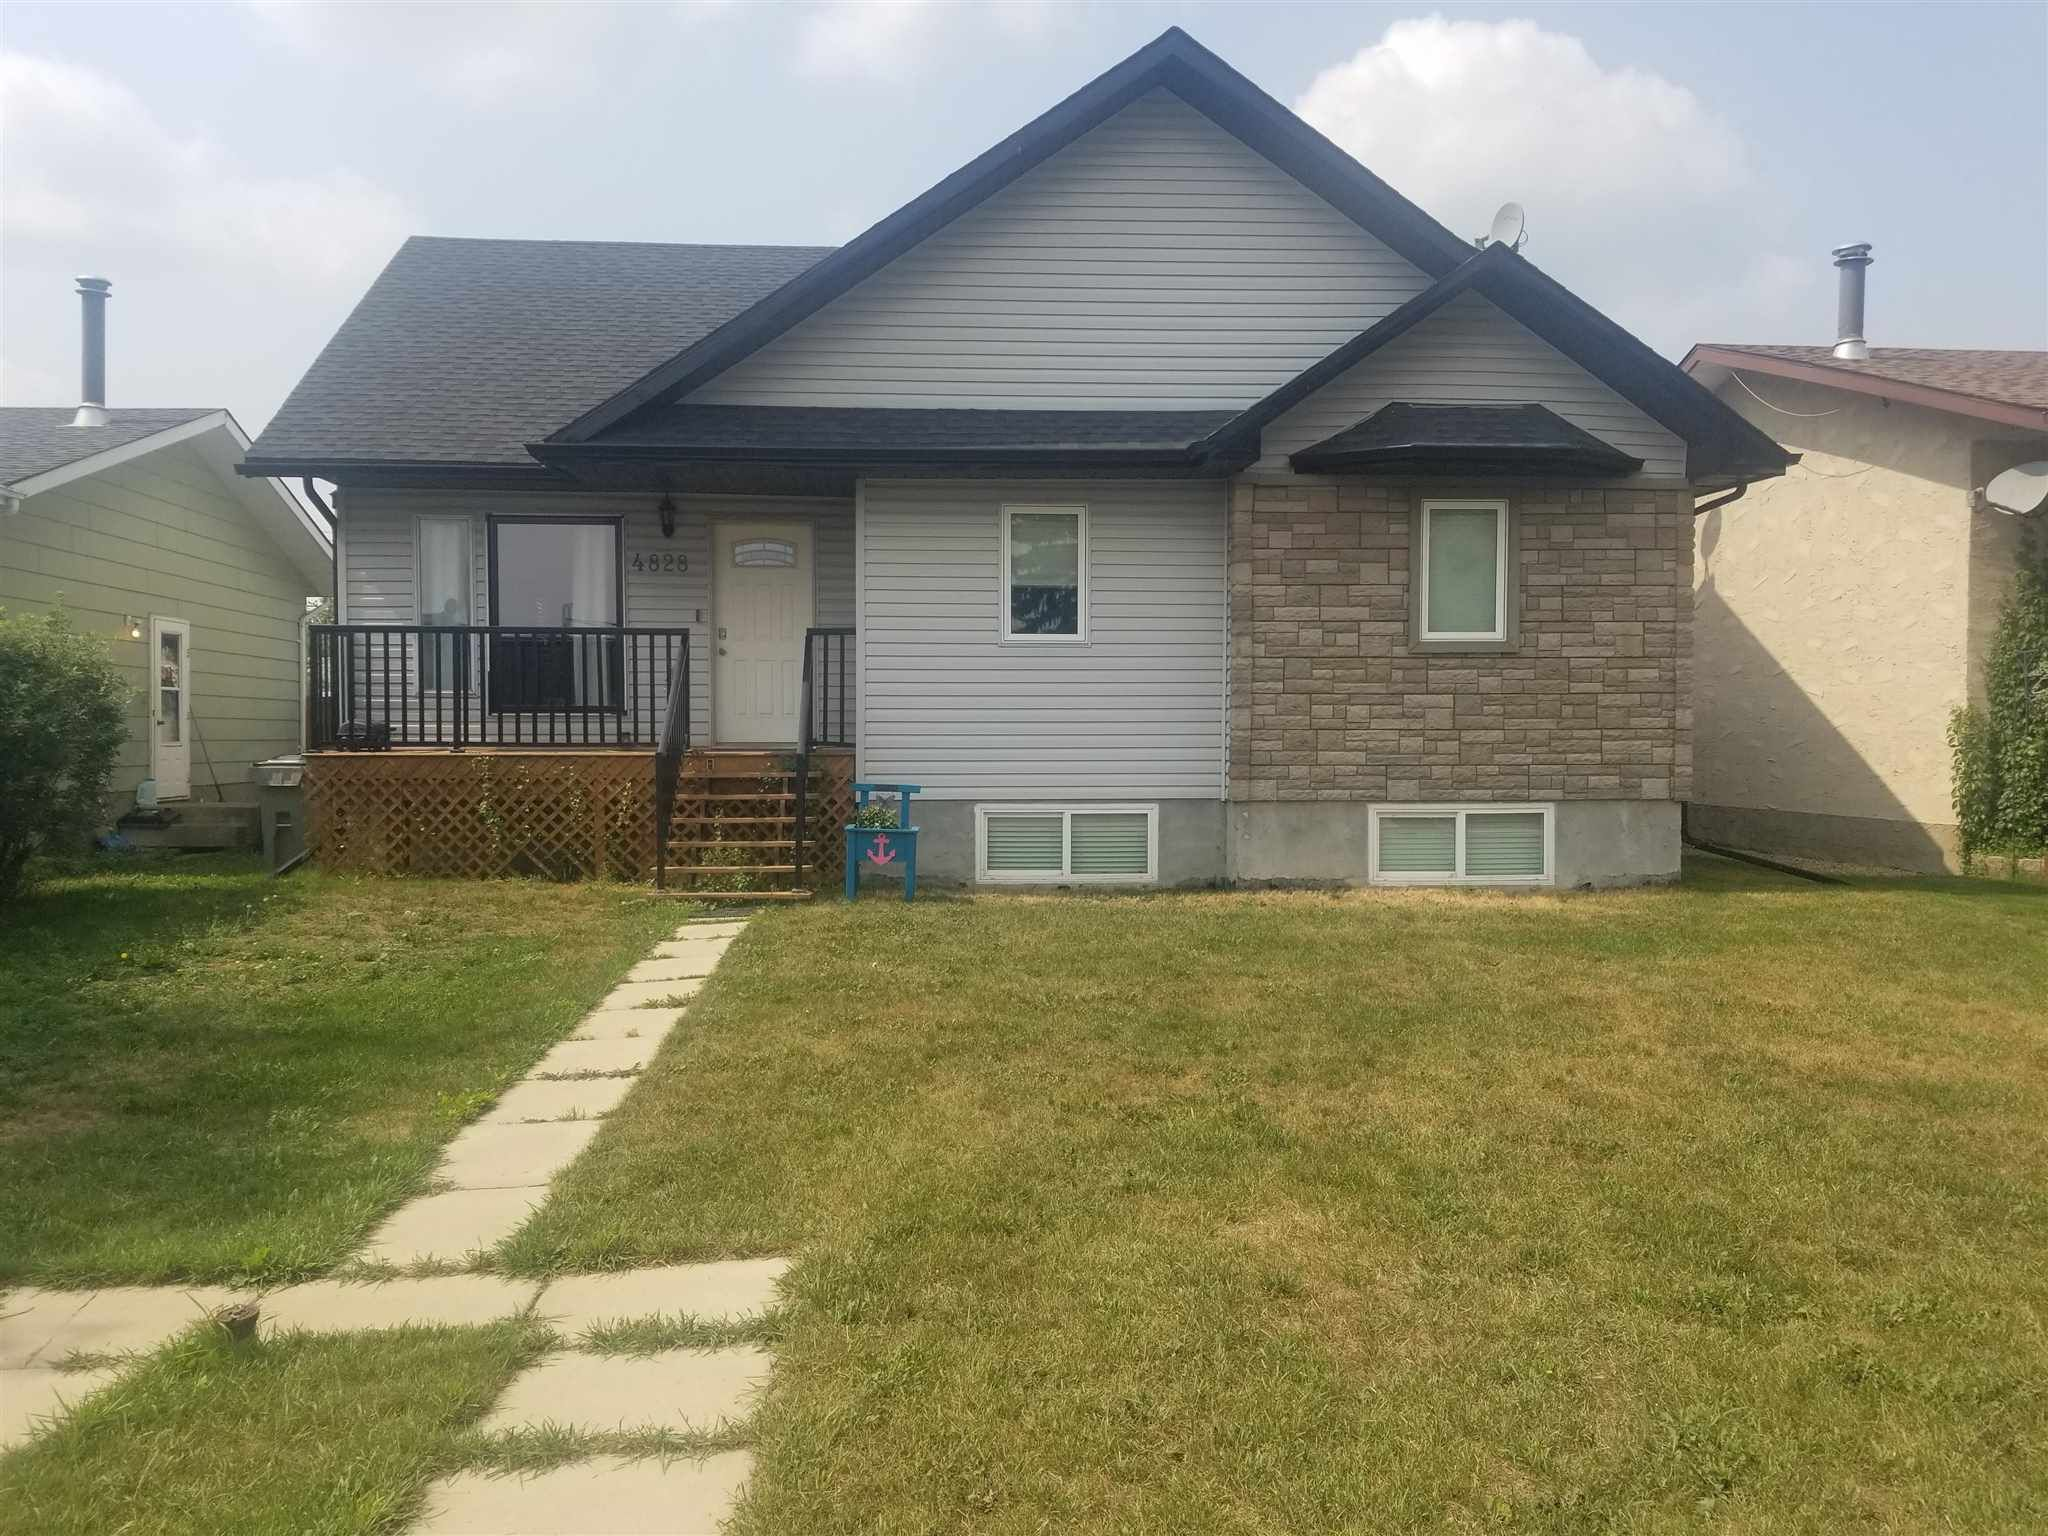 Main Photo: 4828 51 Street: Redwater House for sale : MLS®# E4257070